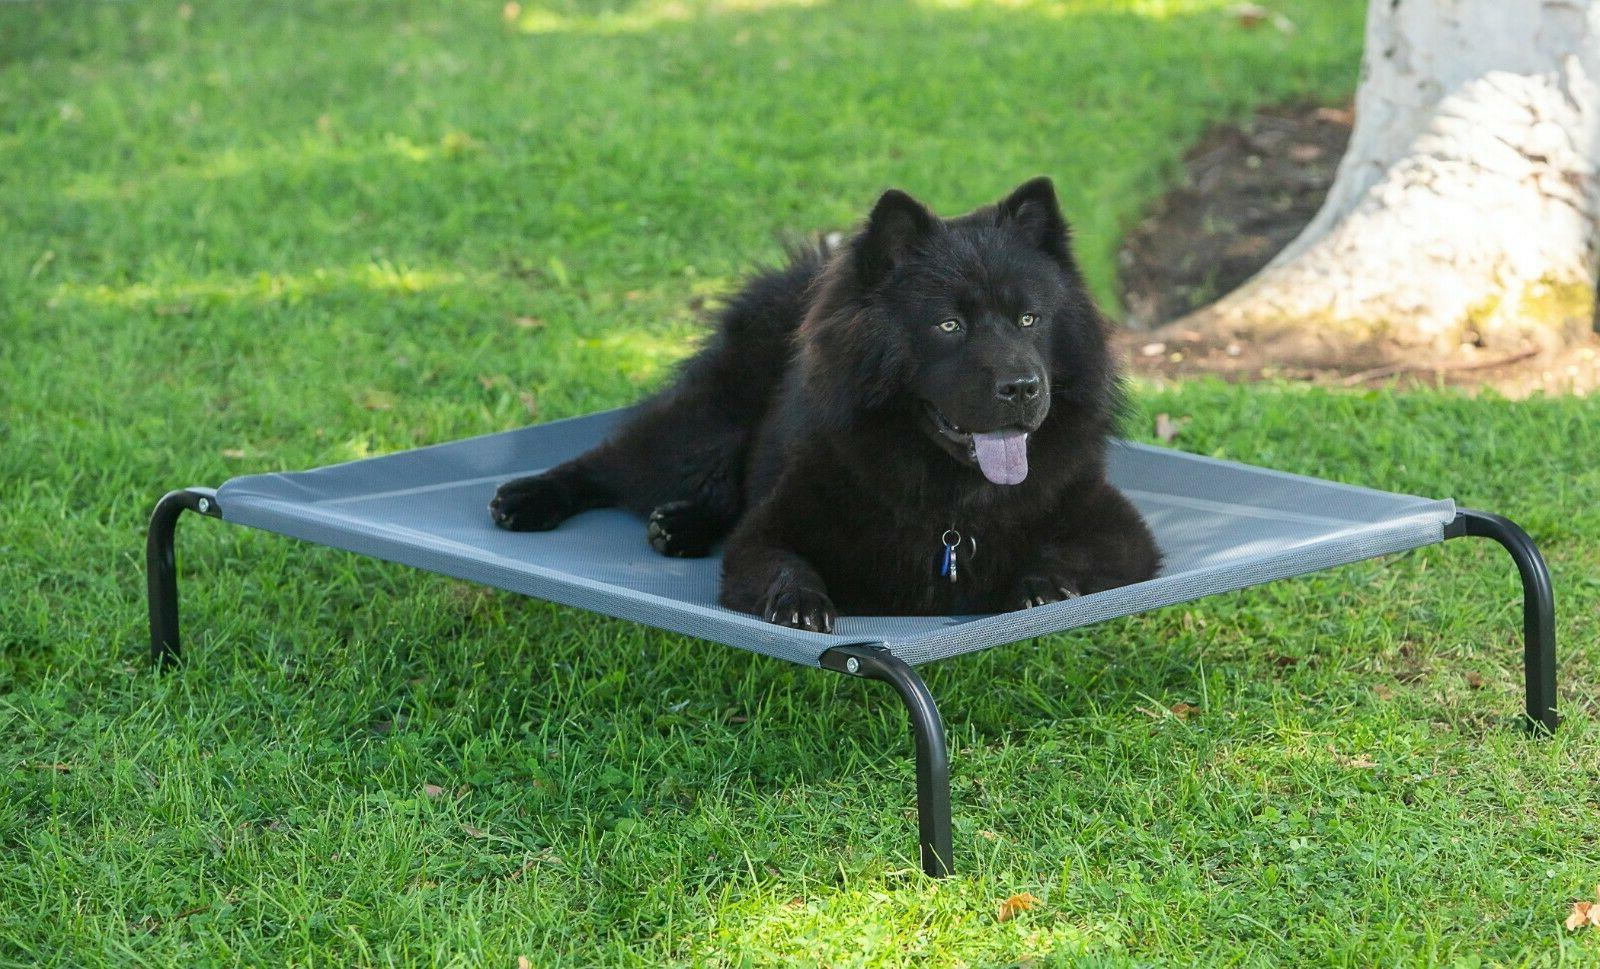 Elevated Dog Sleep Raised Cot for Outdoor-MM